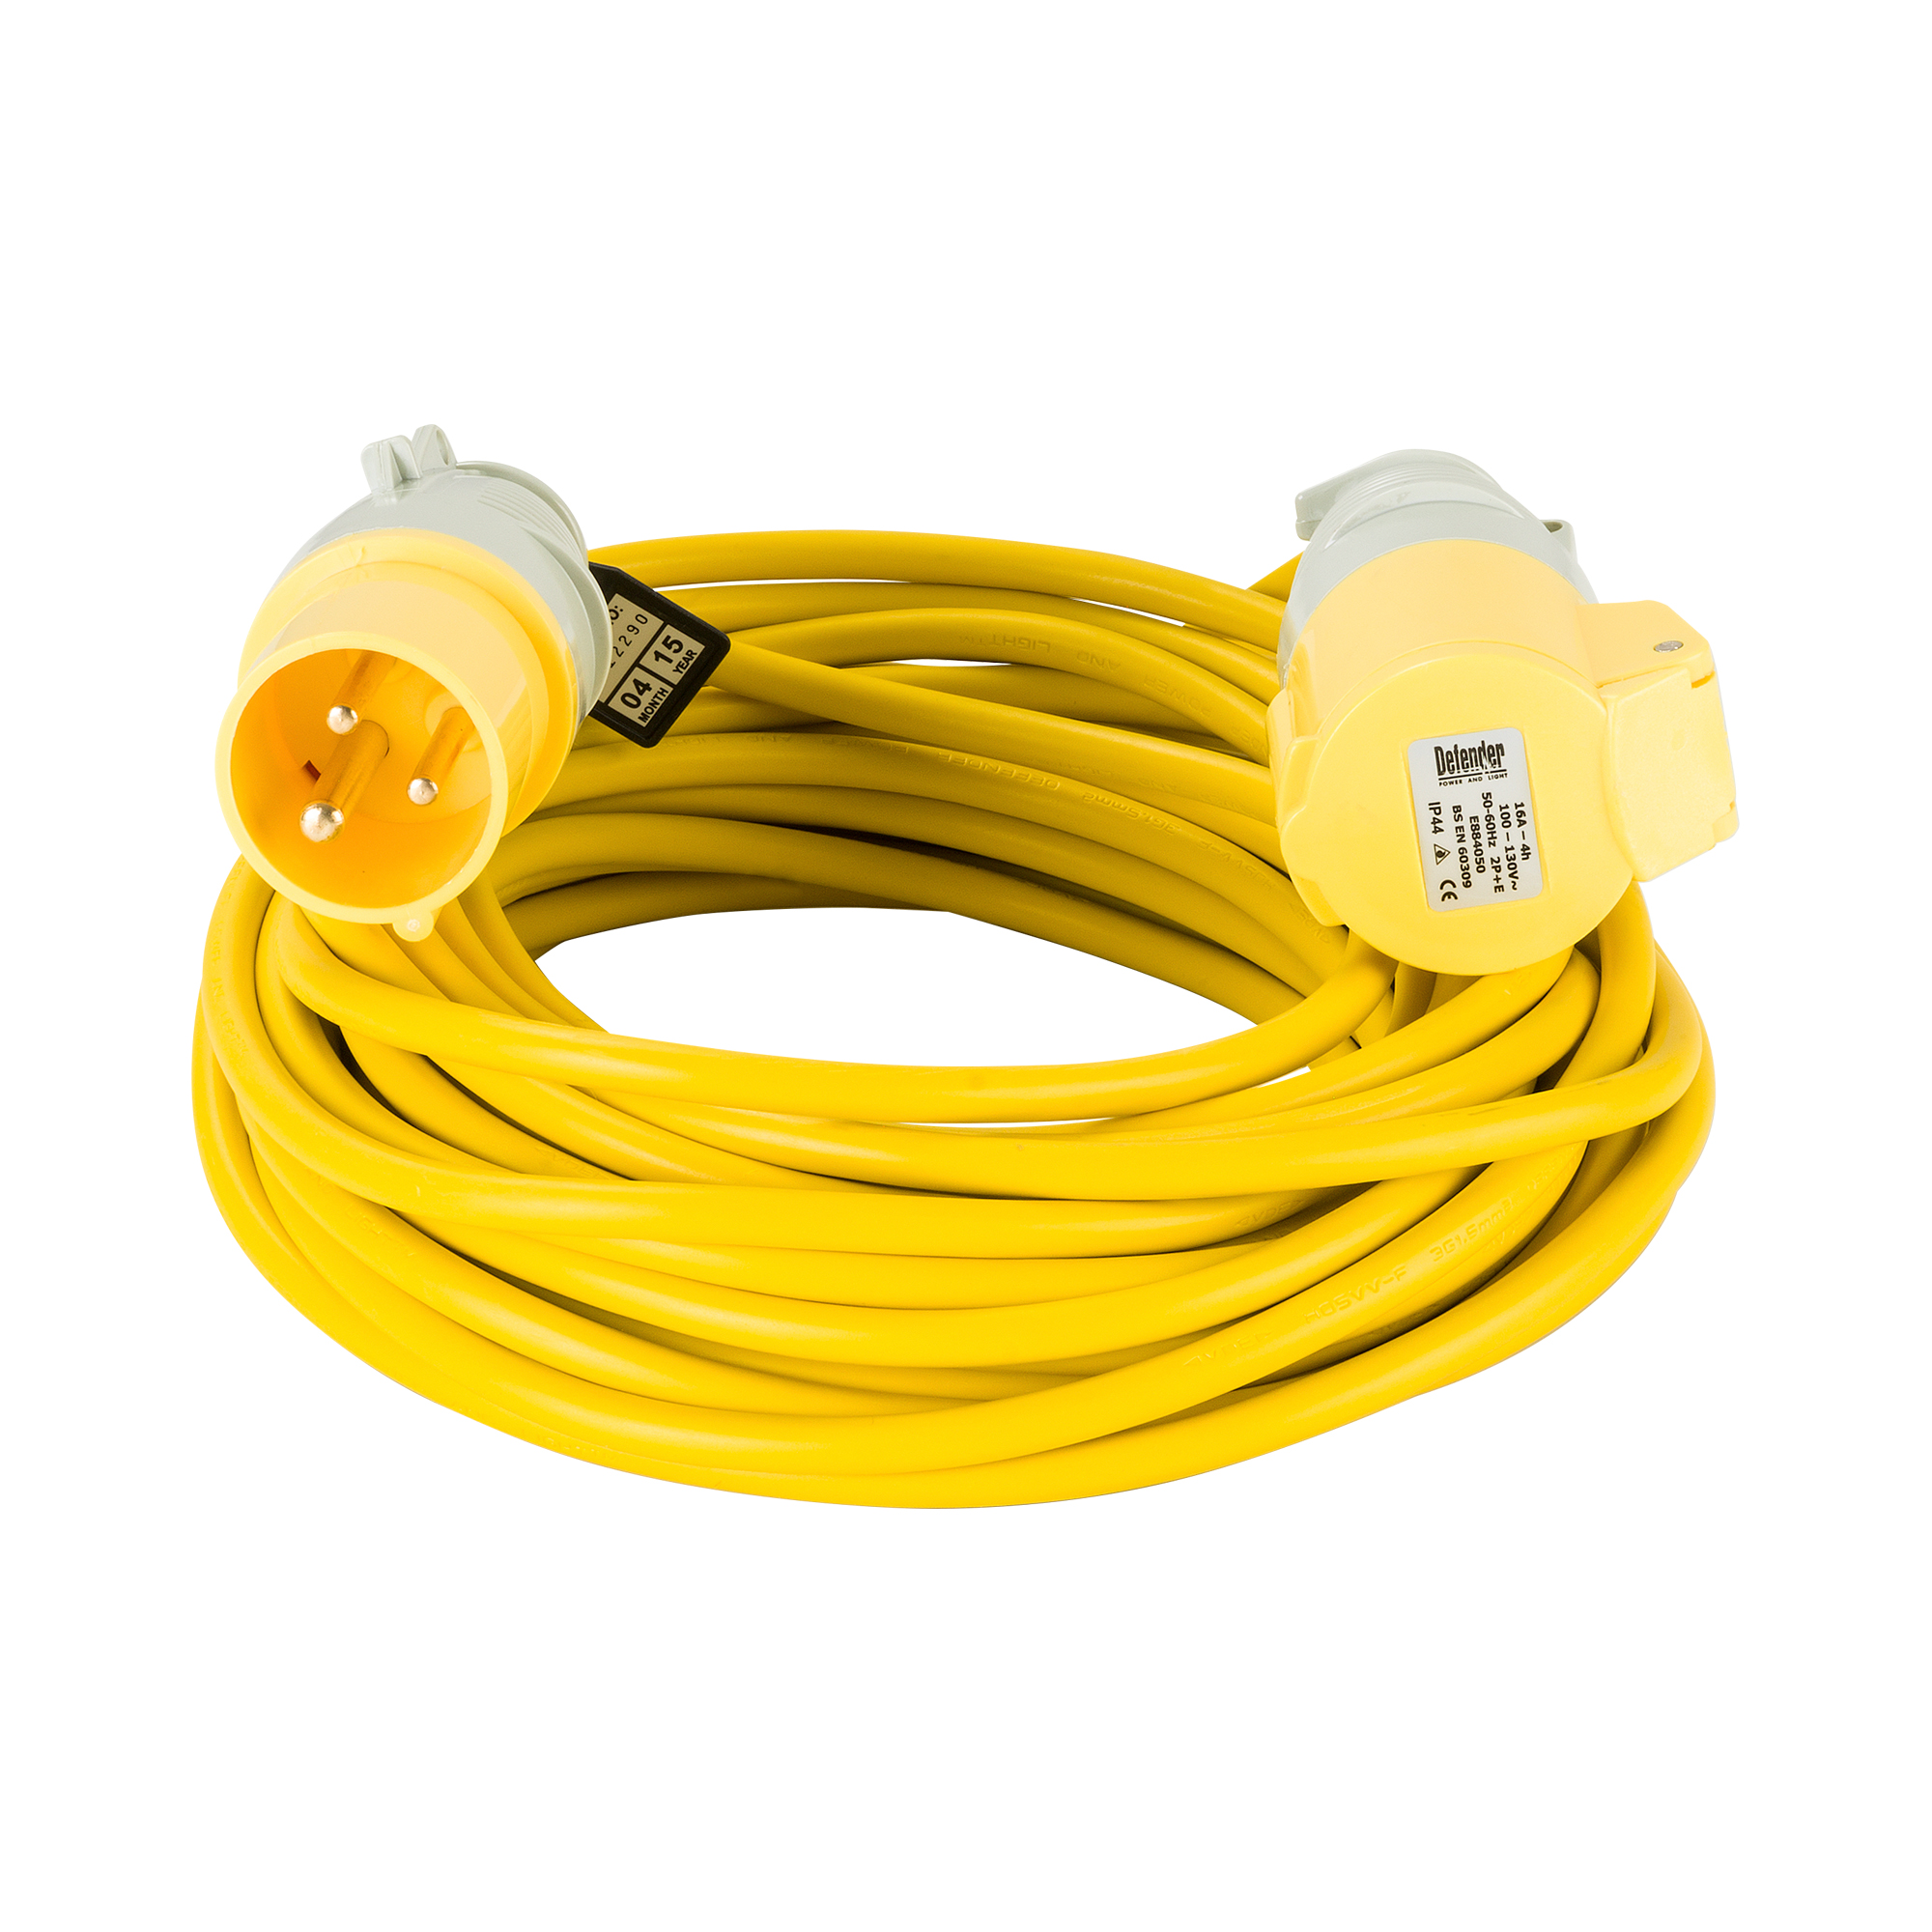 Yellow Defender 14M 1.5mm 16A arctic grade 110V extension lead cable with Defender plug and coupler, on a white background